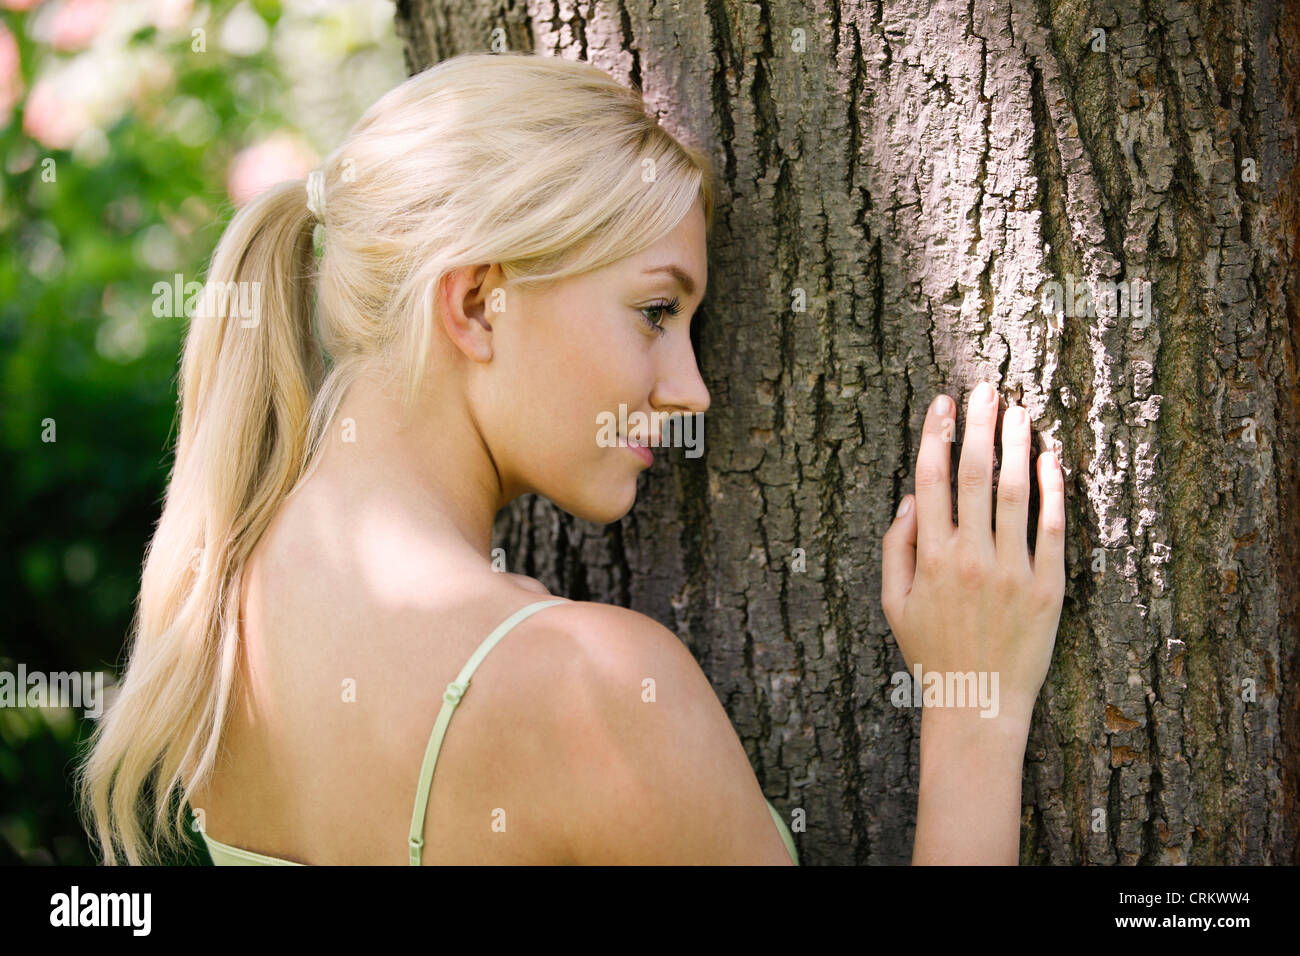 A young blonde woman leaning against a tree trunk - Stock Image